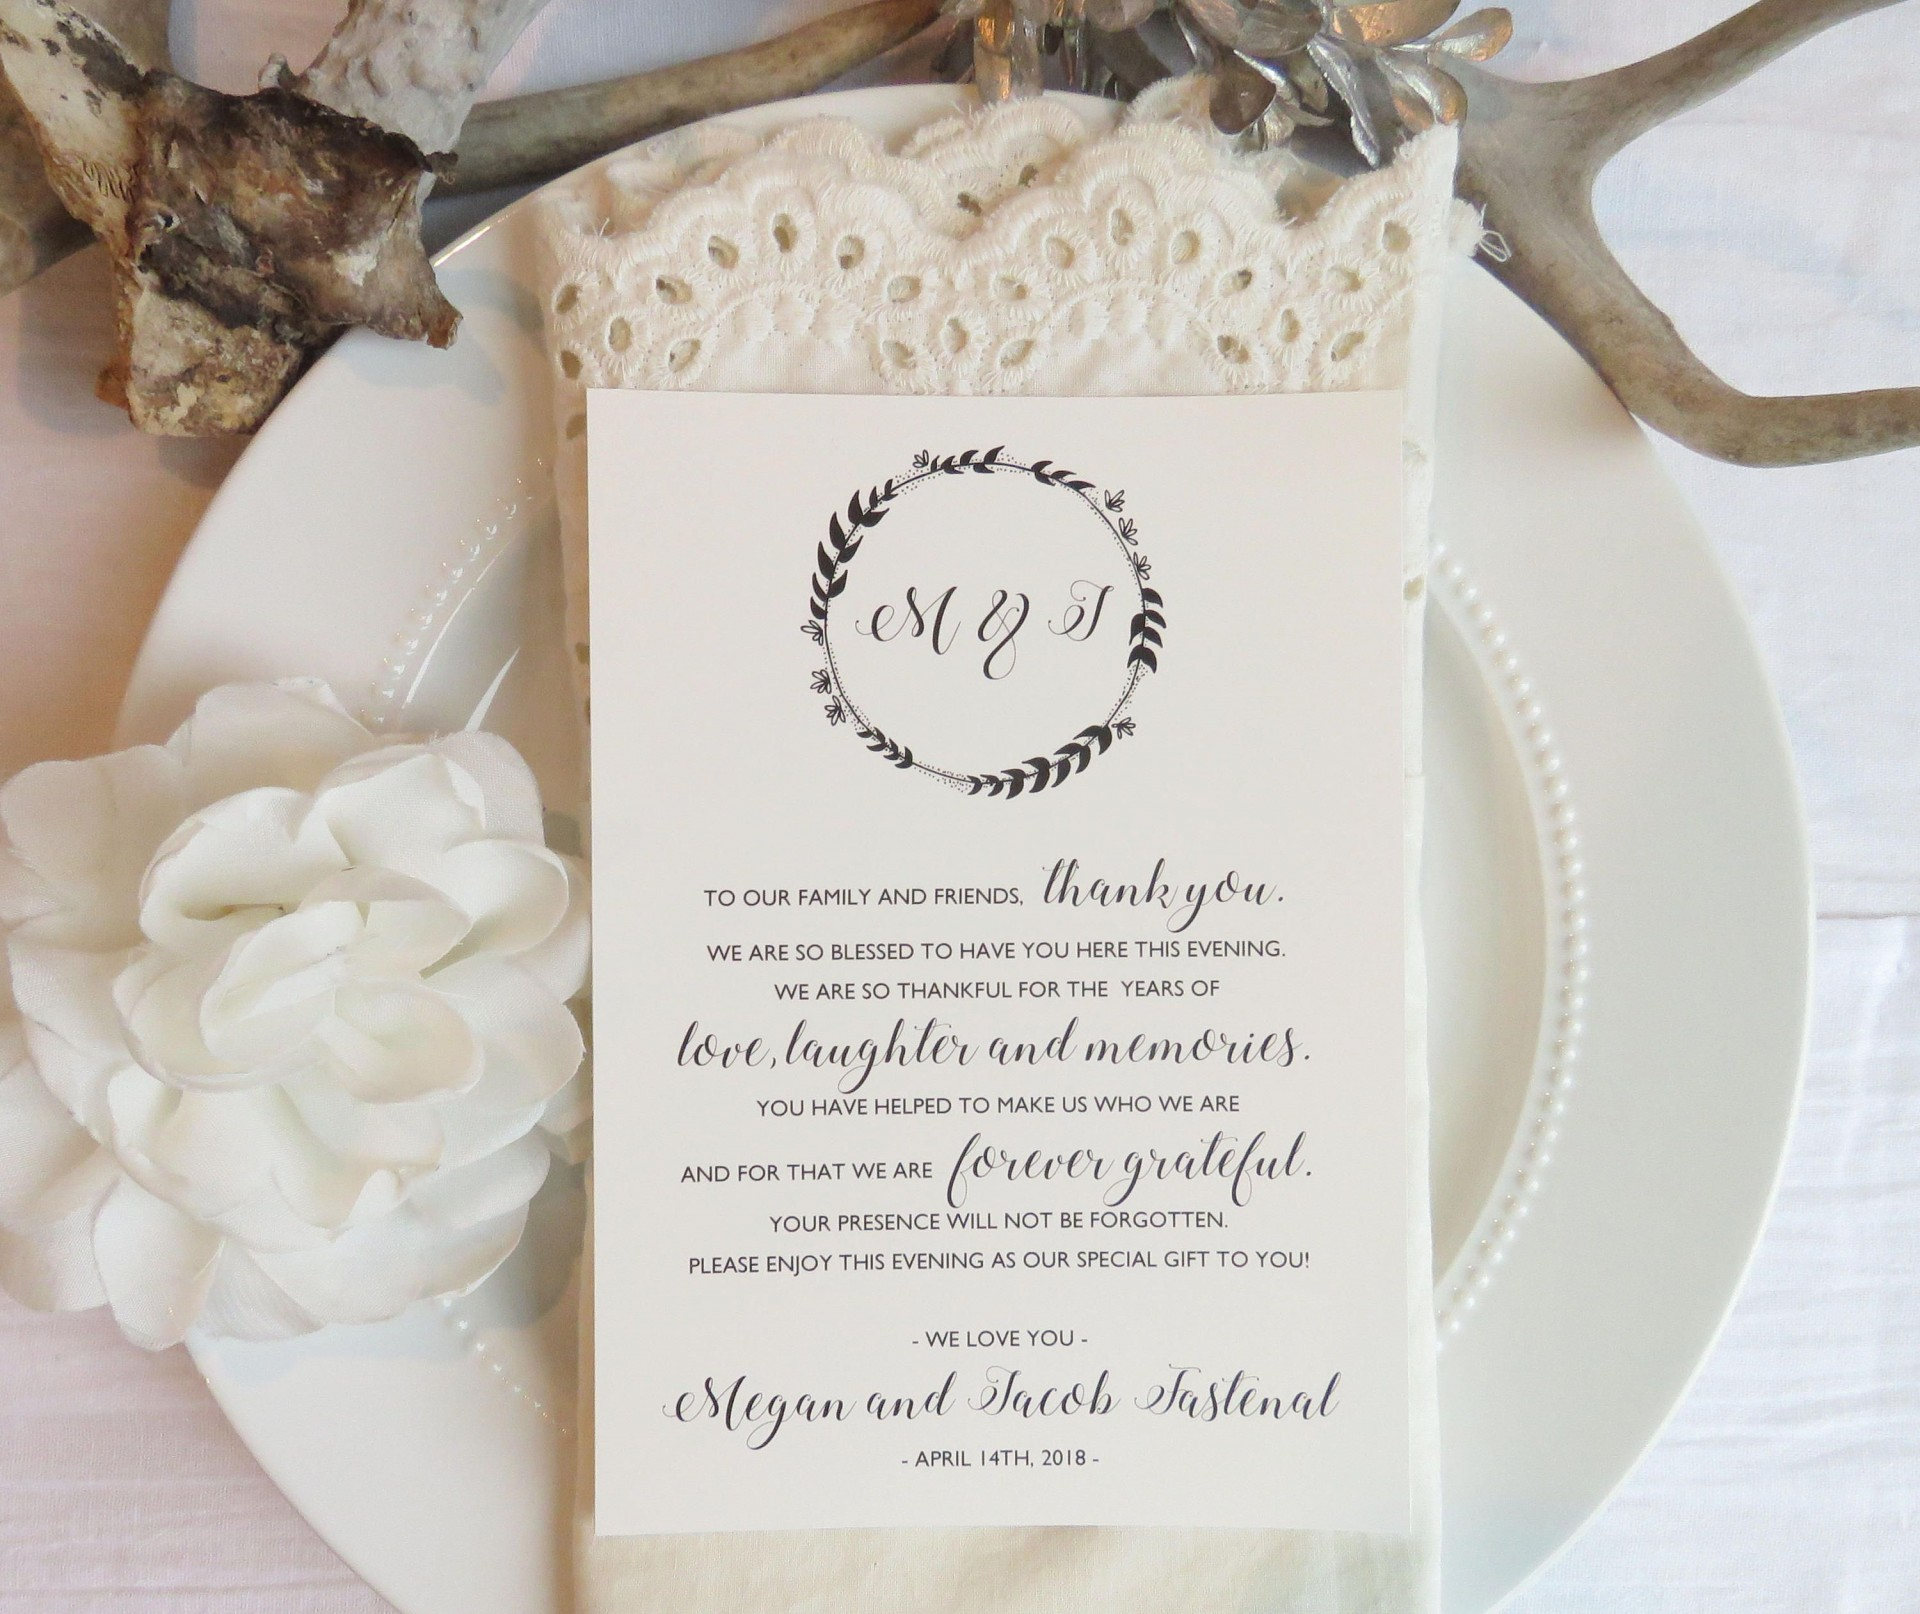 003 Fantastic Thank You Card Template Wedding High Resolution  Free Printable Publisher1920